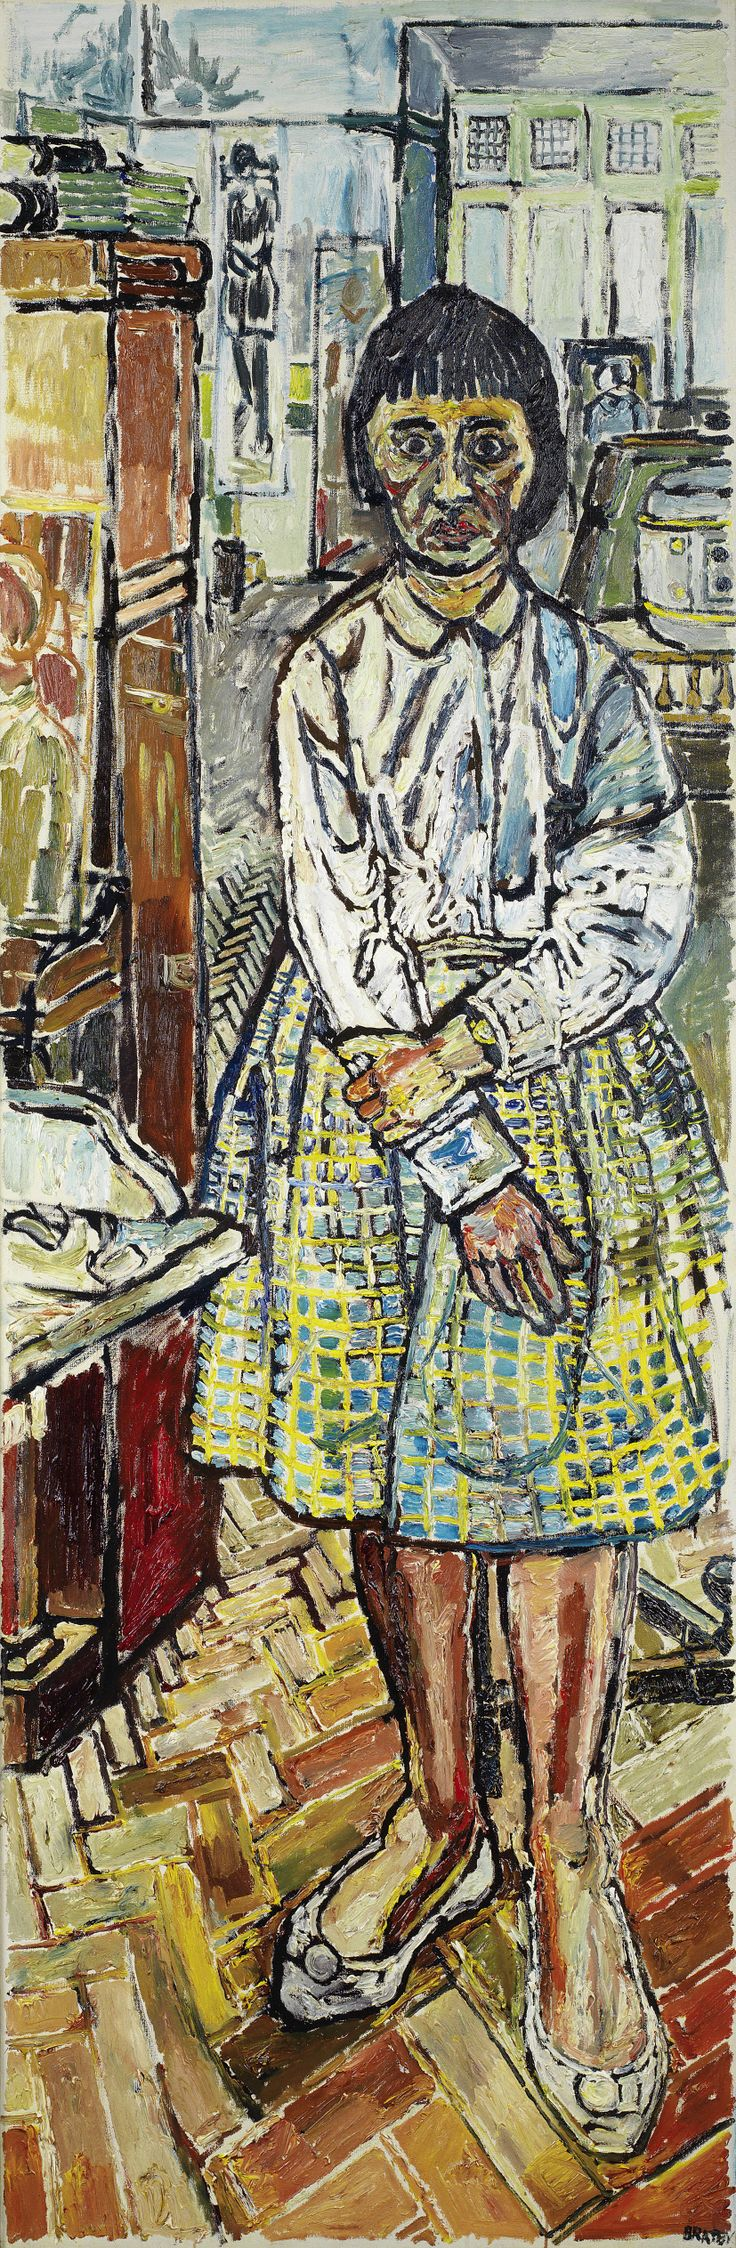 John Bratby R.A. (British, 1928-1992) Gloria signed 'BRATBY' (lower right), oil on canvas 183 x 60.5cm (72 1/16 x 23 13/16in).